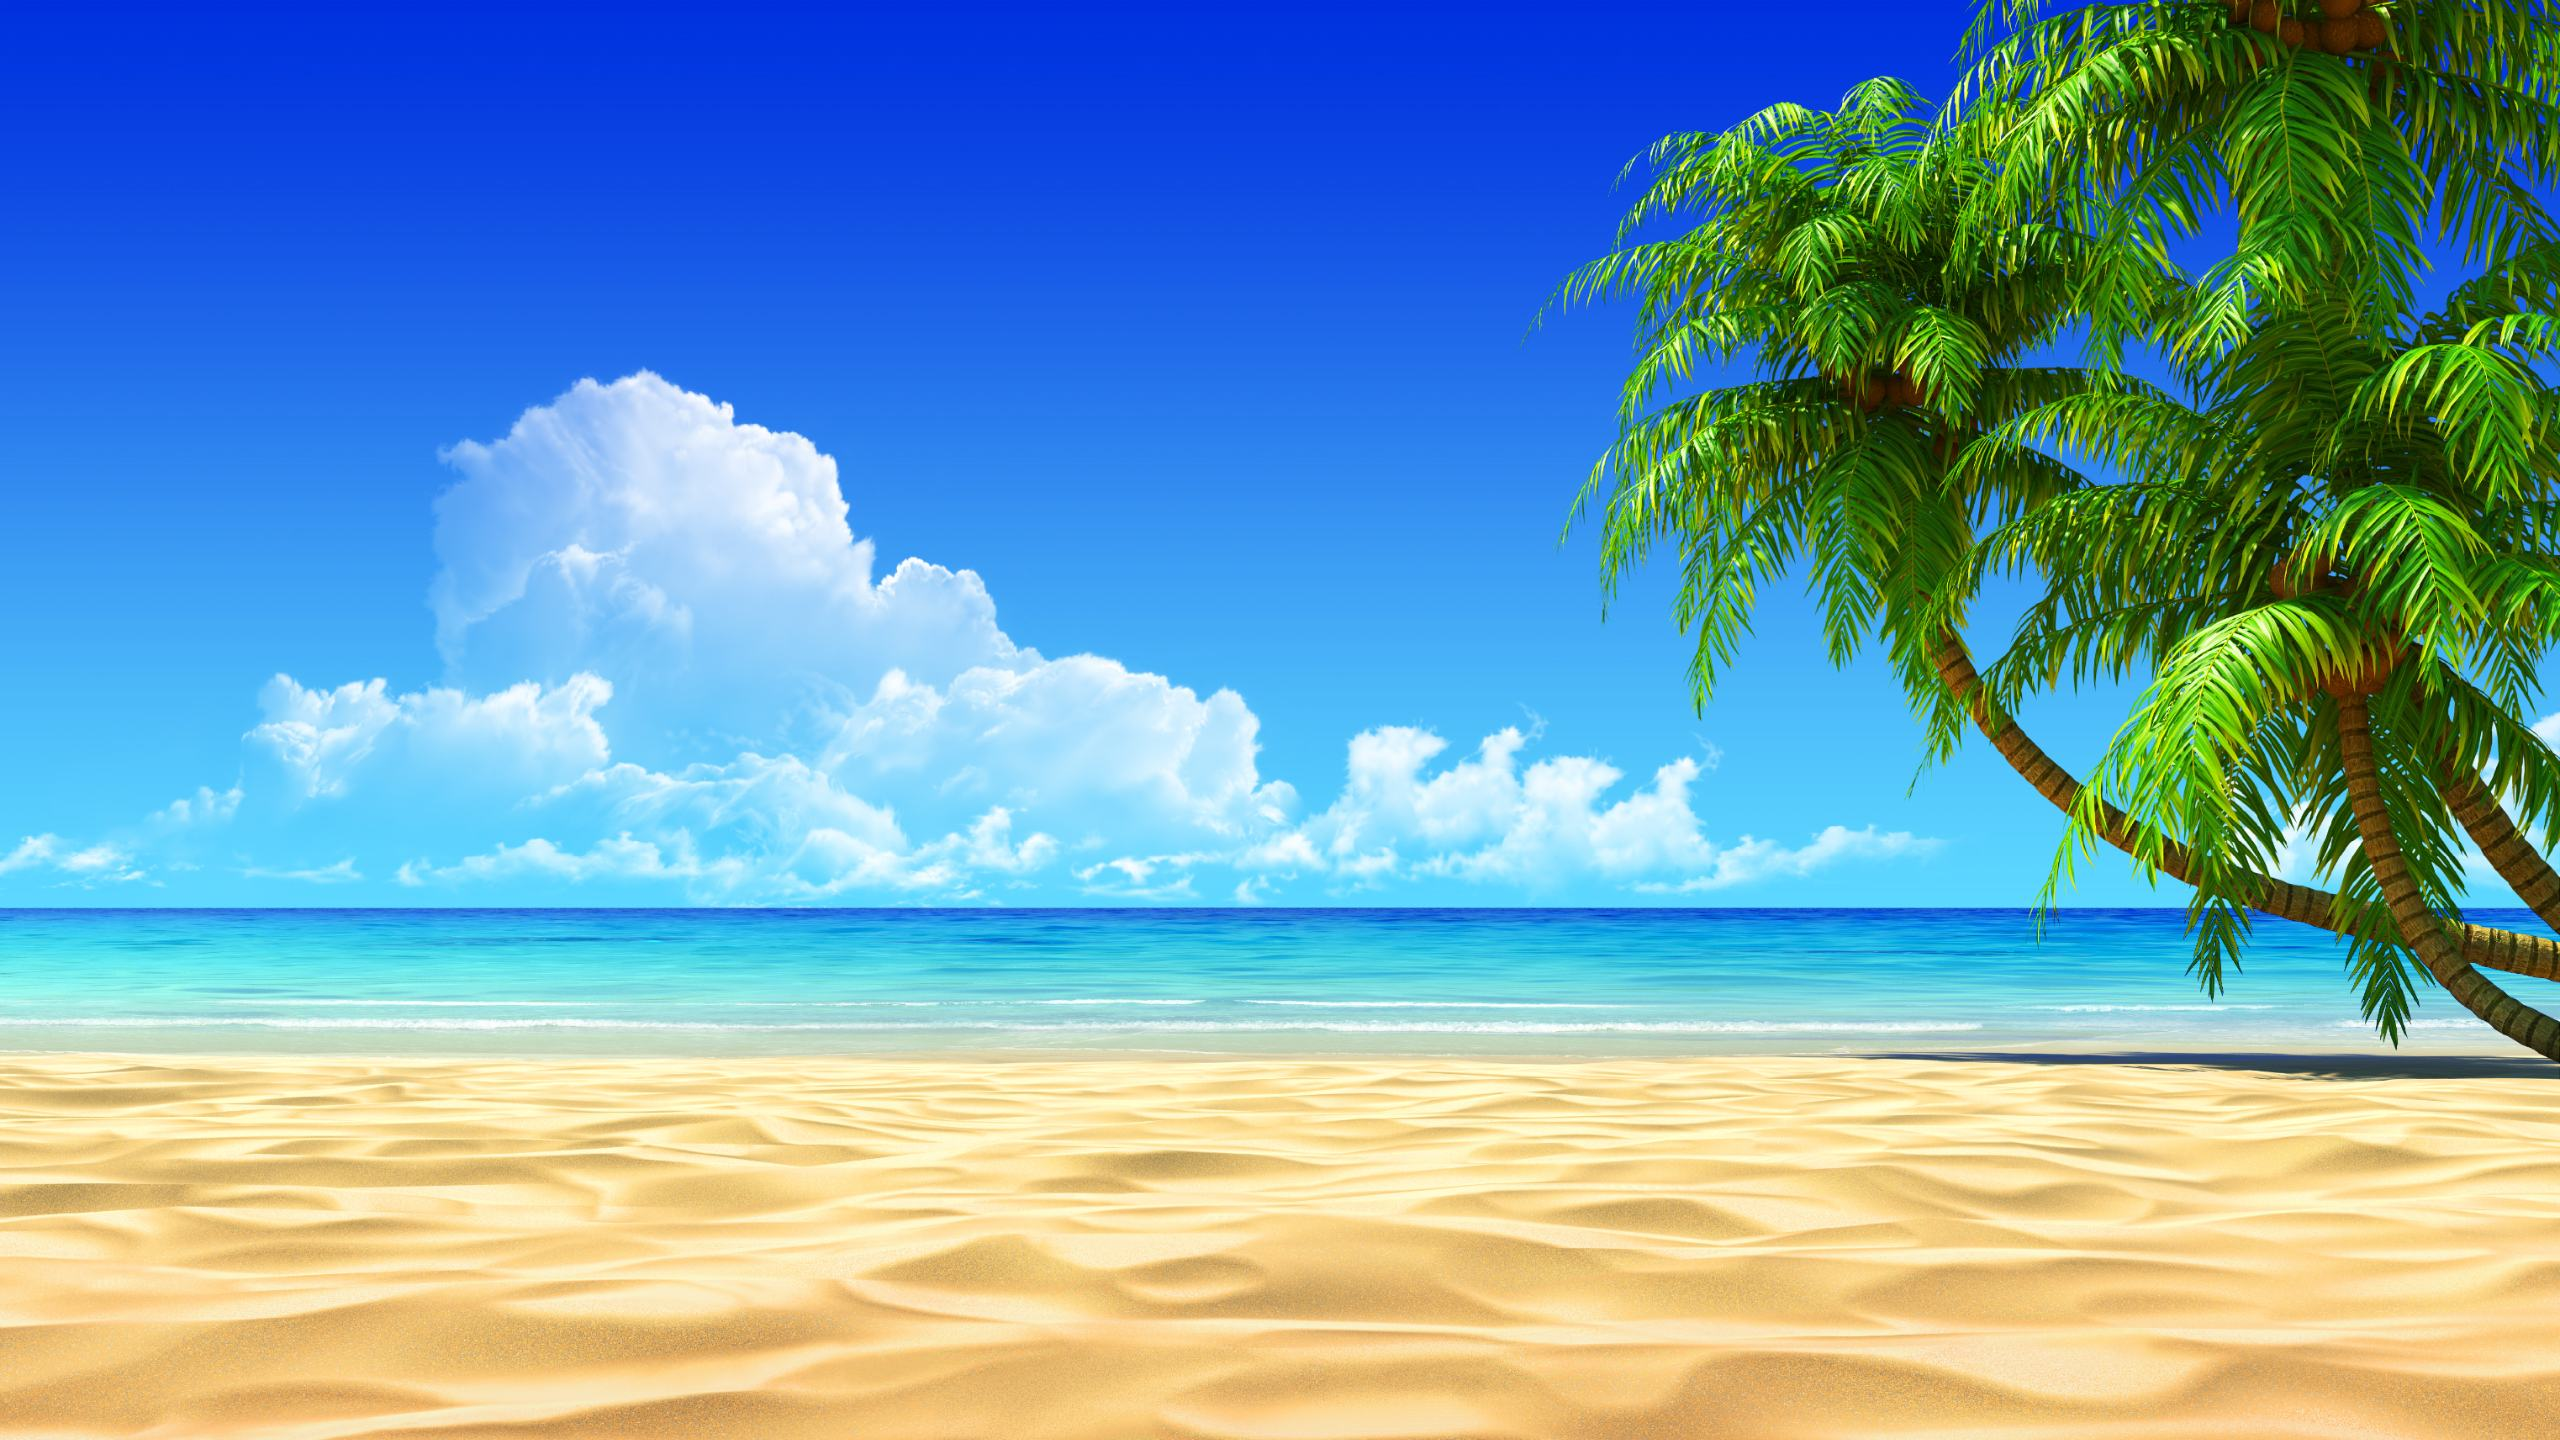 Beach background clipart 12 » Clipart Station